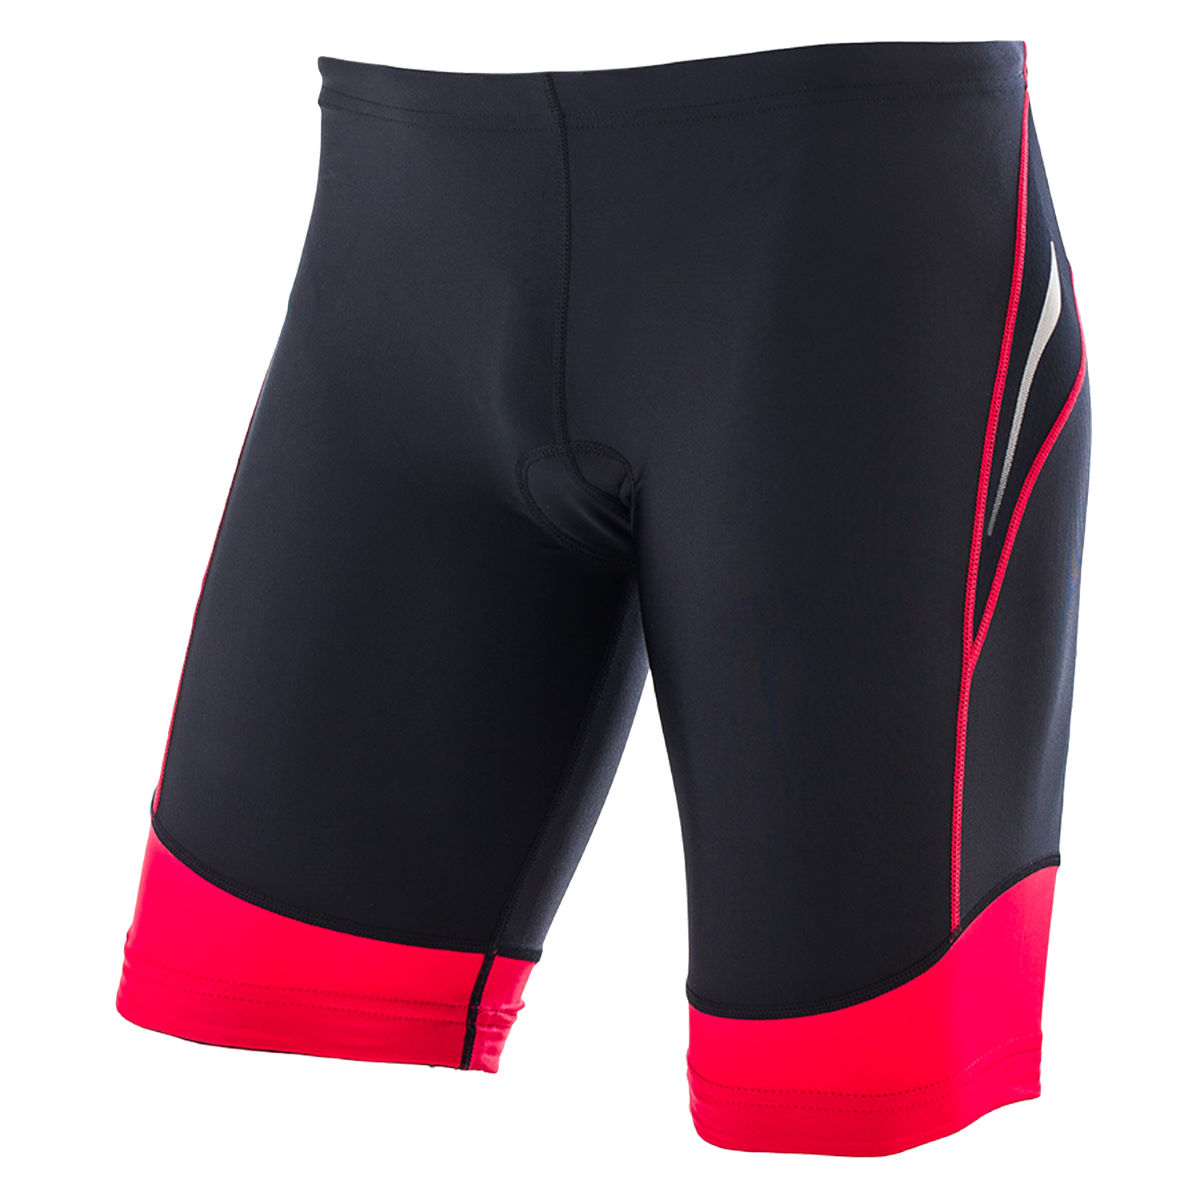 Cuissard court de triathlon Orca Core - XS Black/Poinsettia